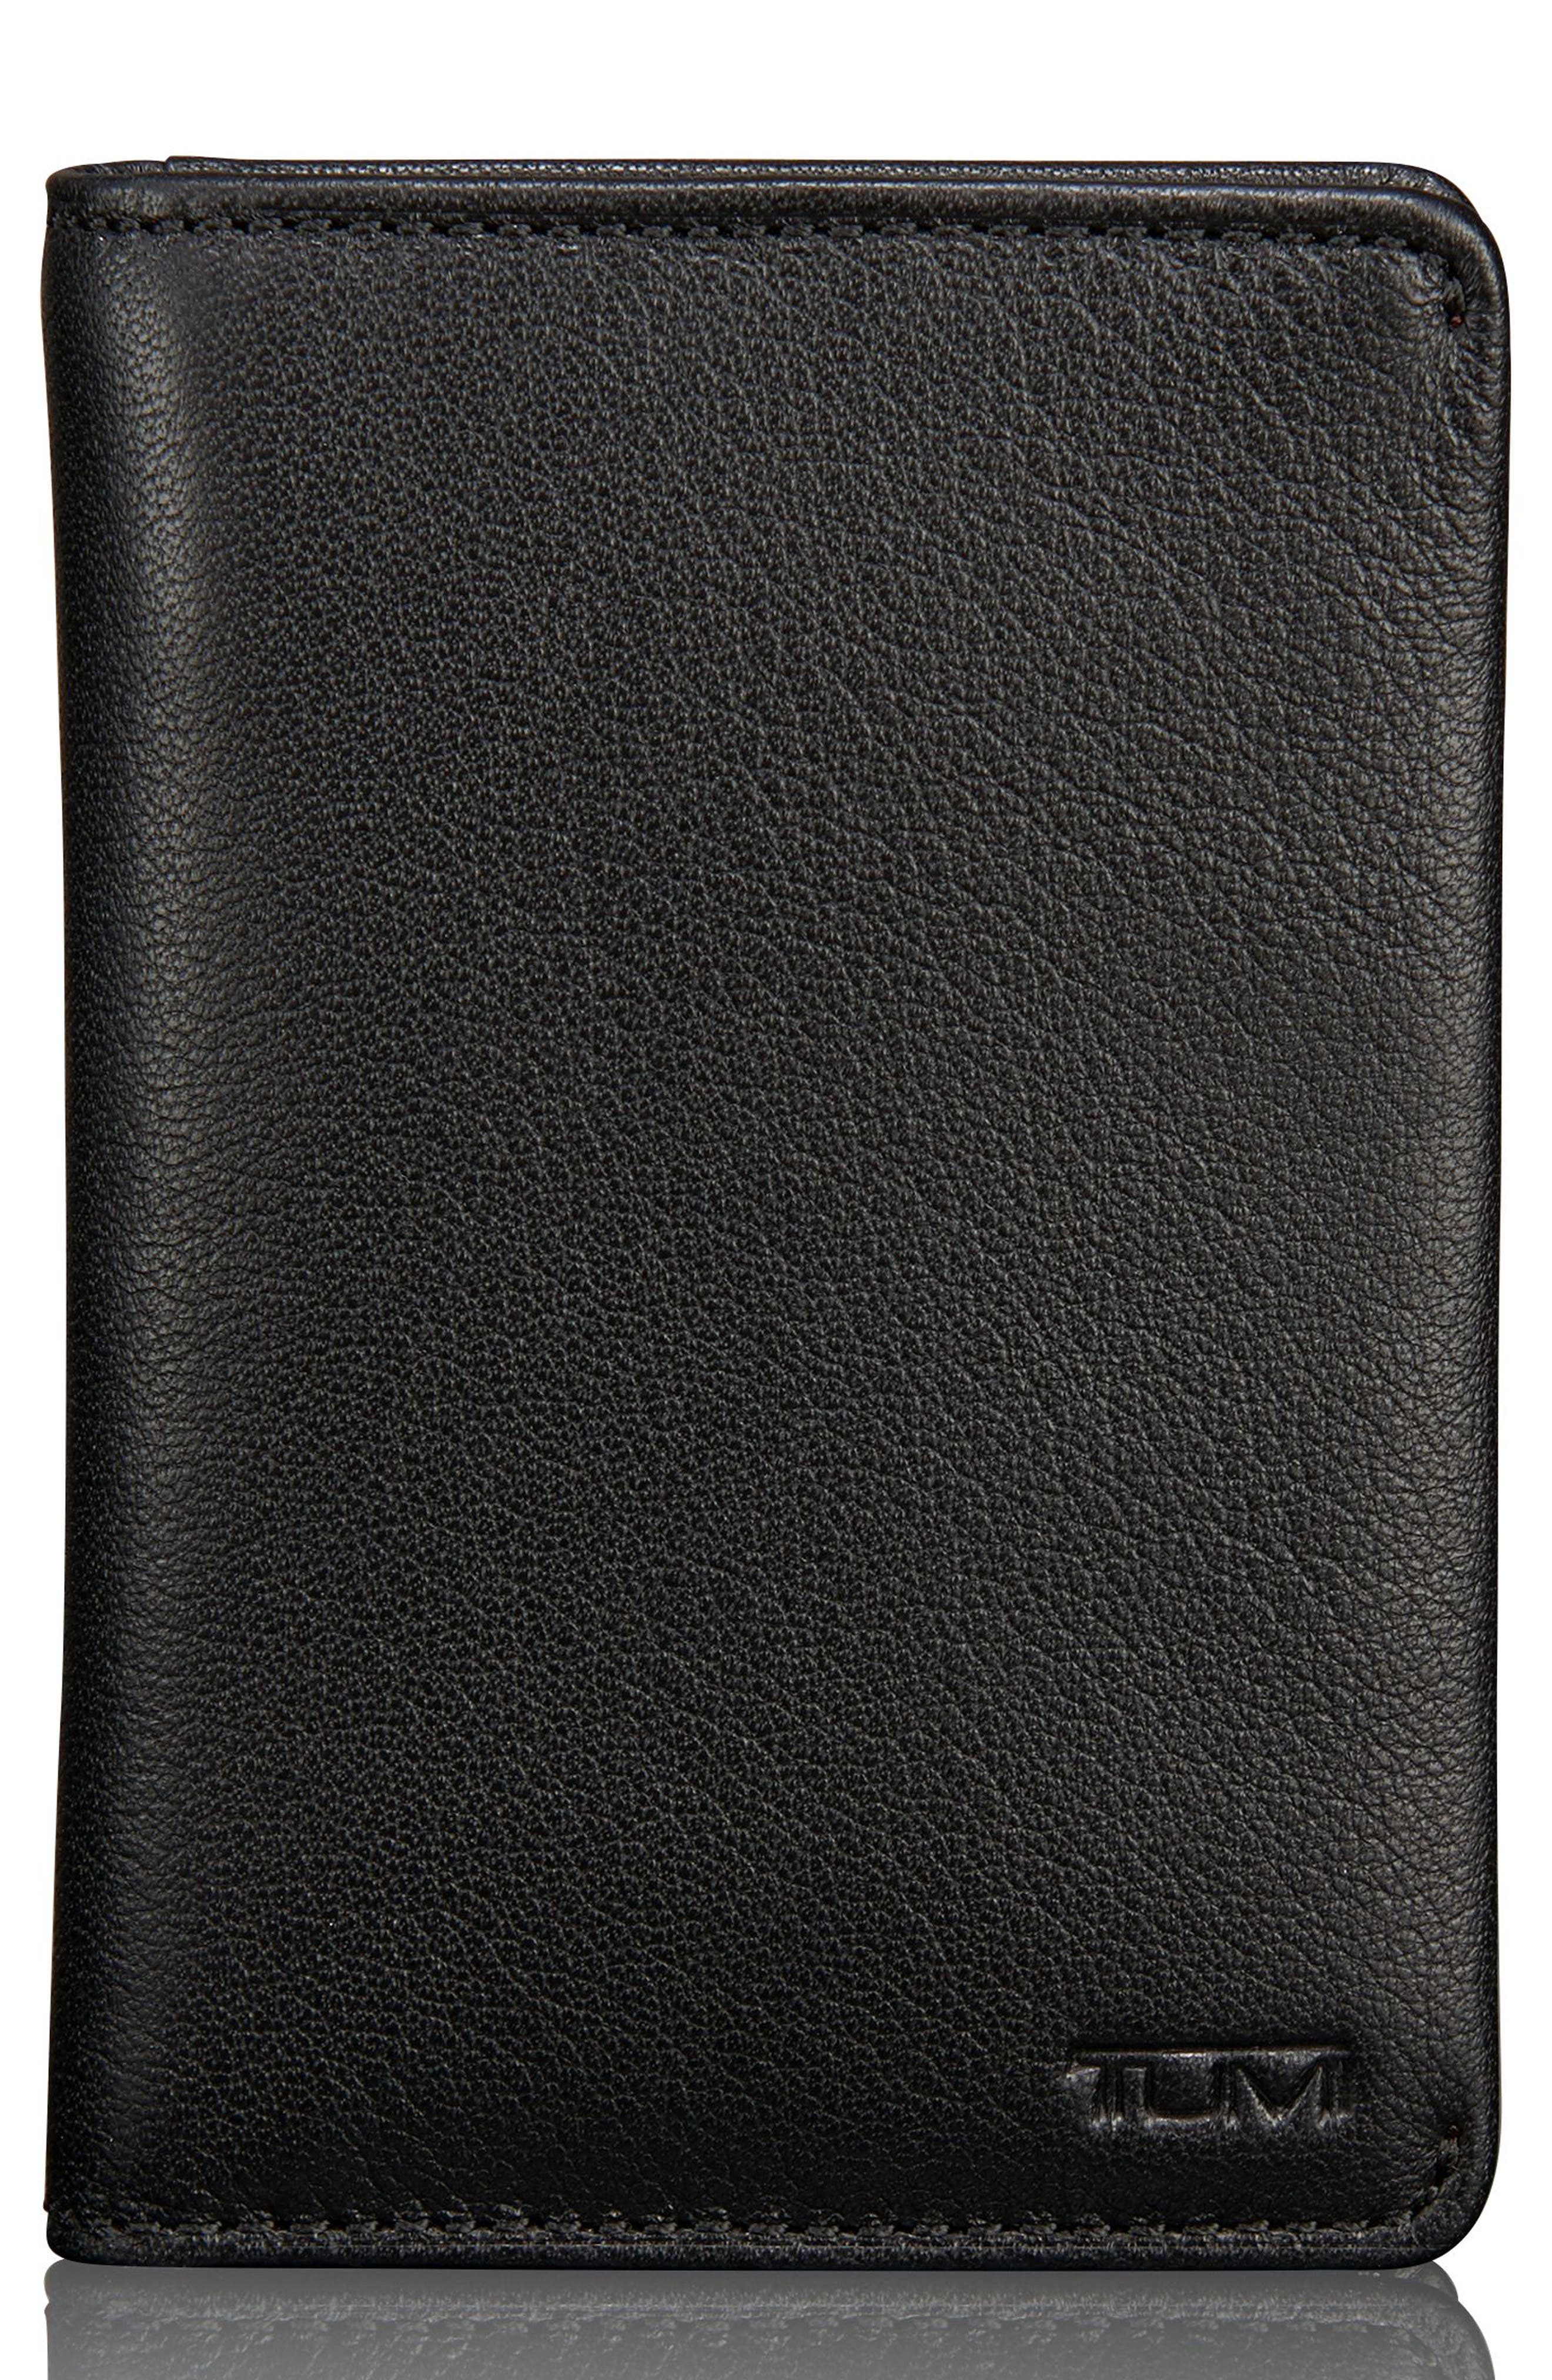 TUMI Leather Card Case, Main, color, 011